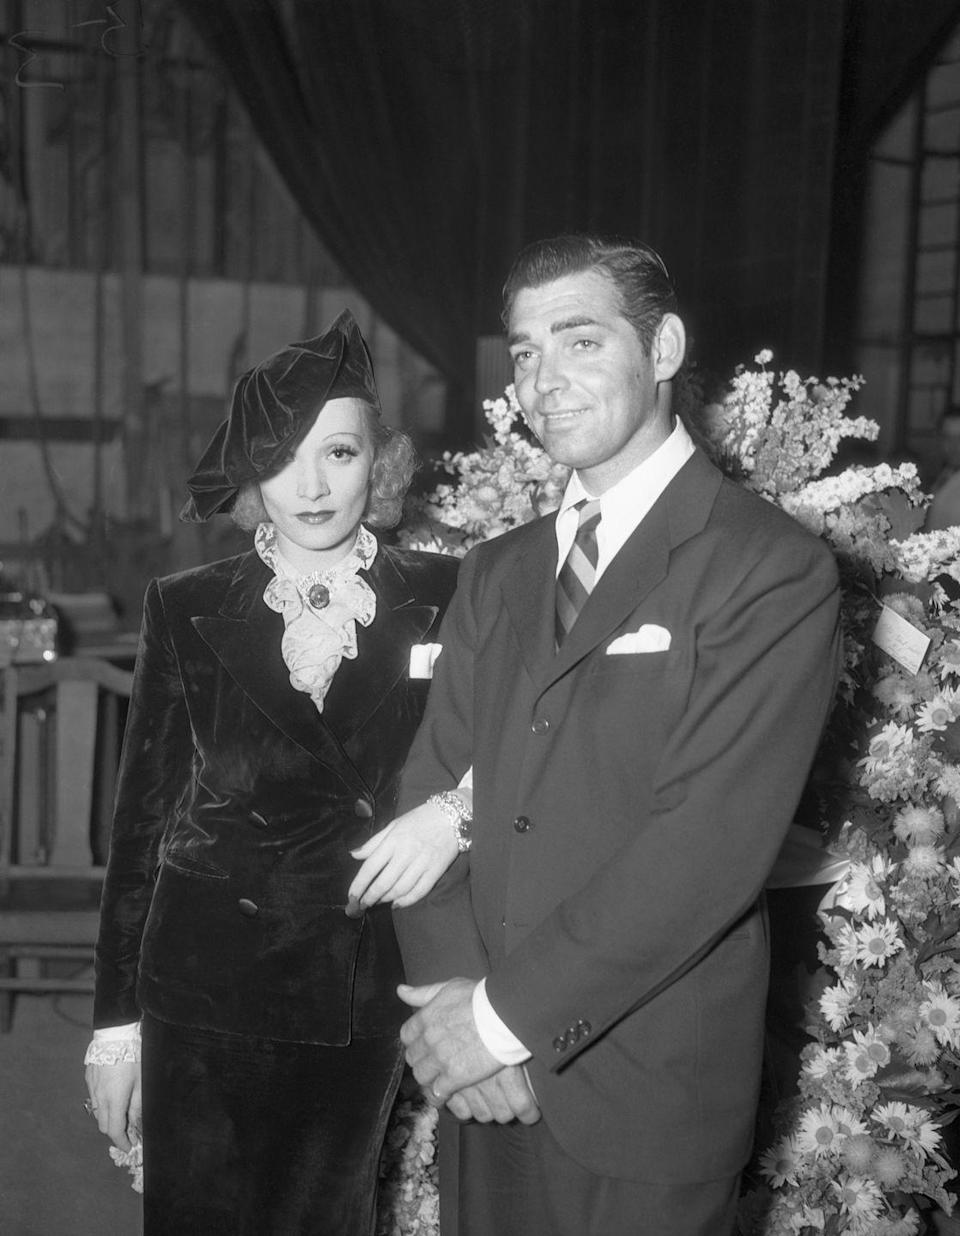 <p>Marlene Dietrich and Clark Gable pose together at the 1936 premiere of <em>T</em><em>heater of the Air</em> in Hollywood.</p>